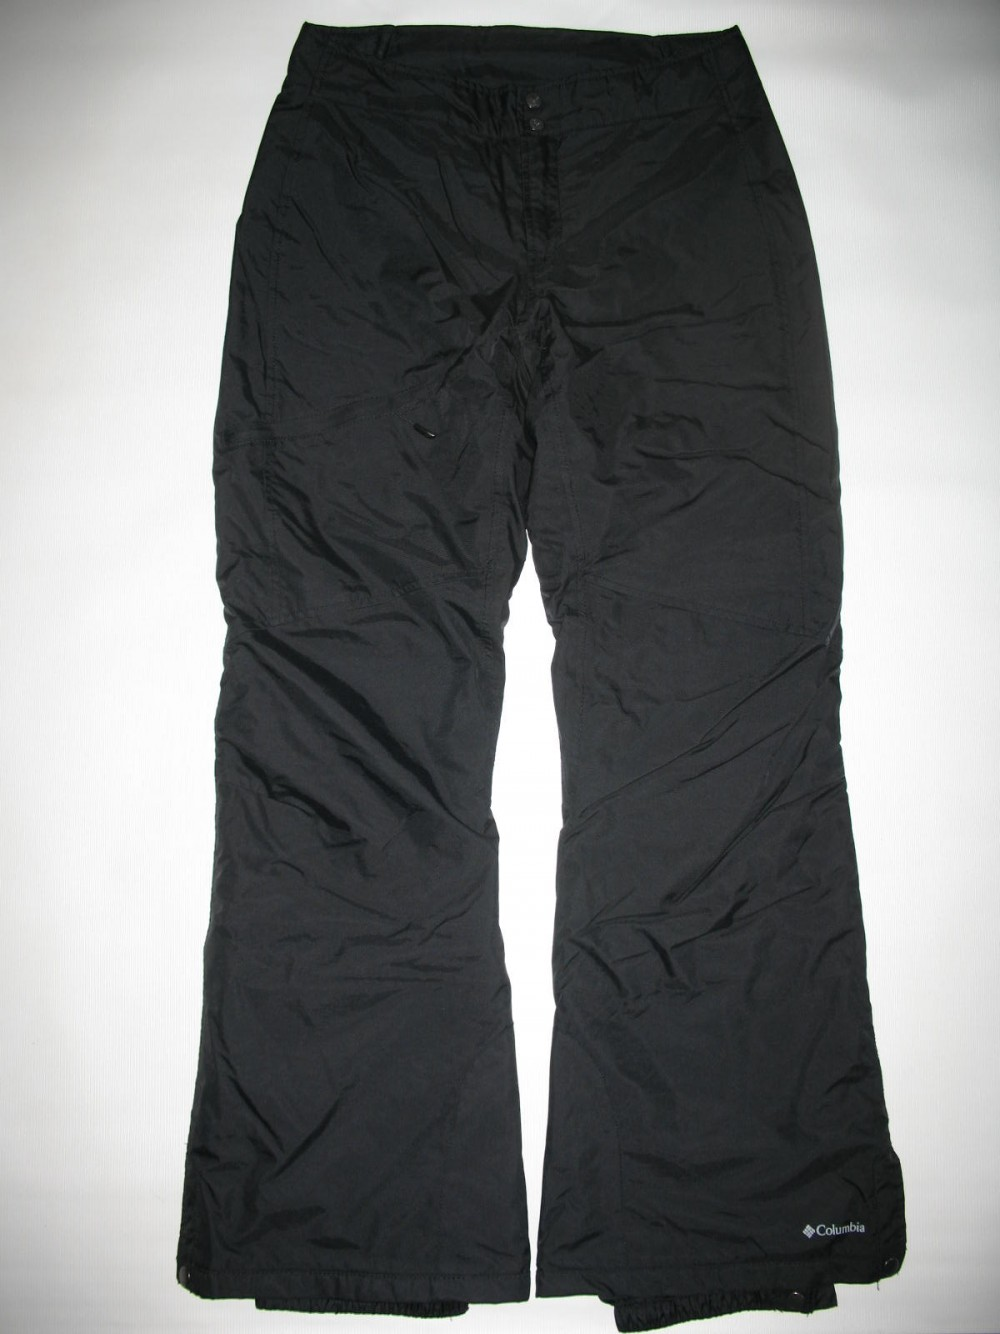 Штаны COLUMBIA bugaboo pants lady (размер M) - 1